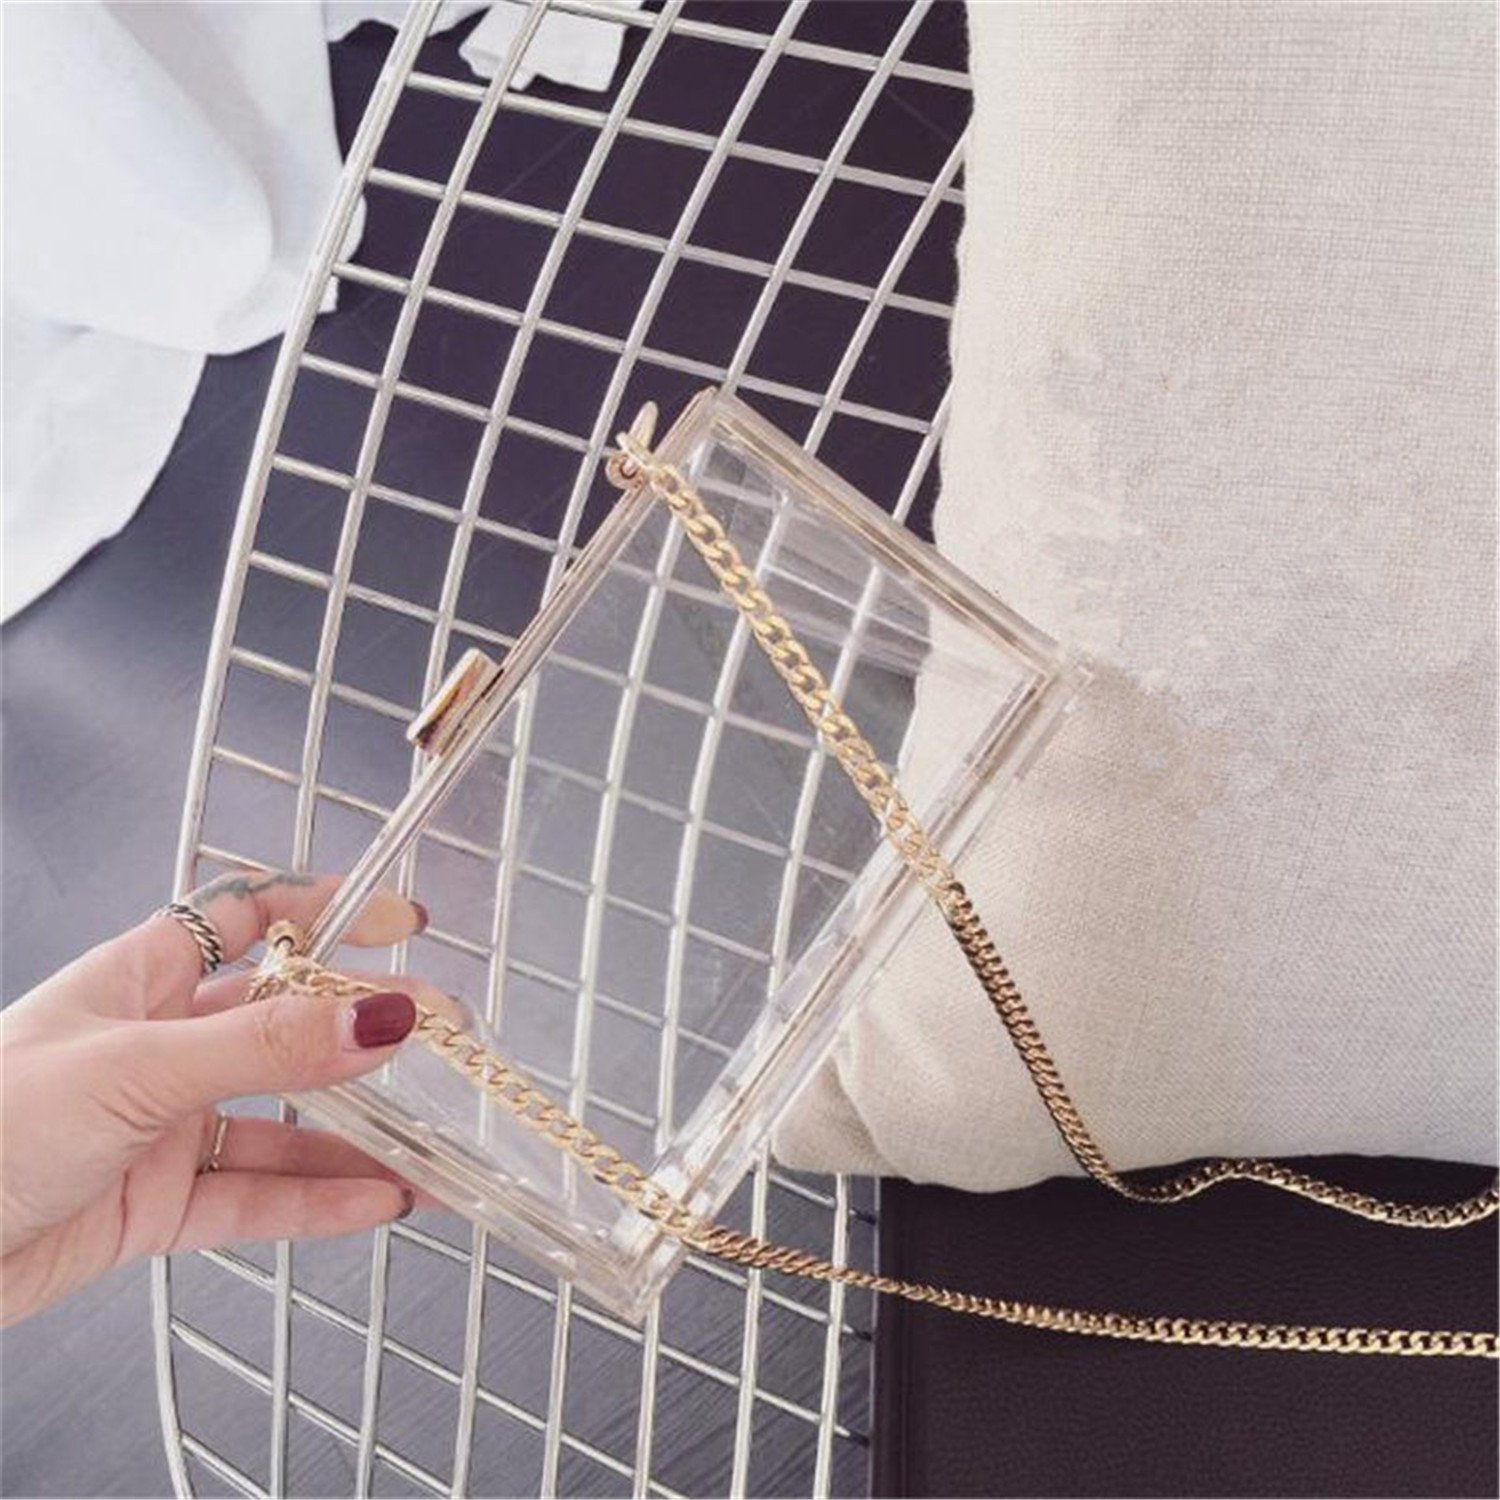 Amazon.com: Paddy Meredith New Acrylic Transparent Clutch Chain Box Bag Women Shoulder Messenger Bags Wedding Party Day Clutch Purse Wallet Handbags Pink: ...